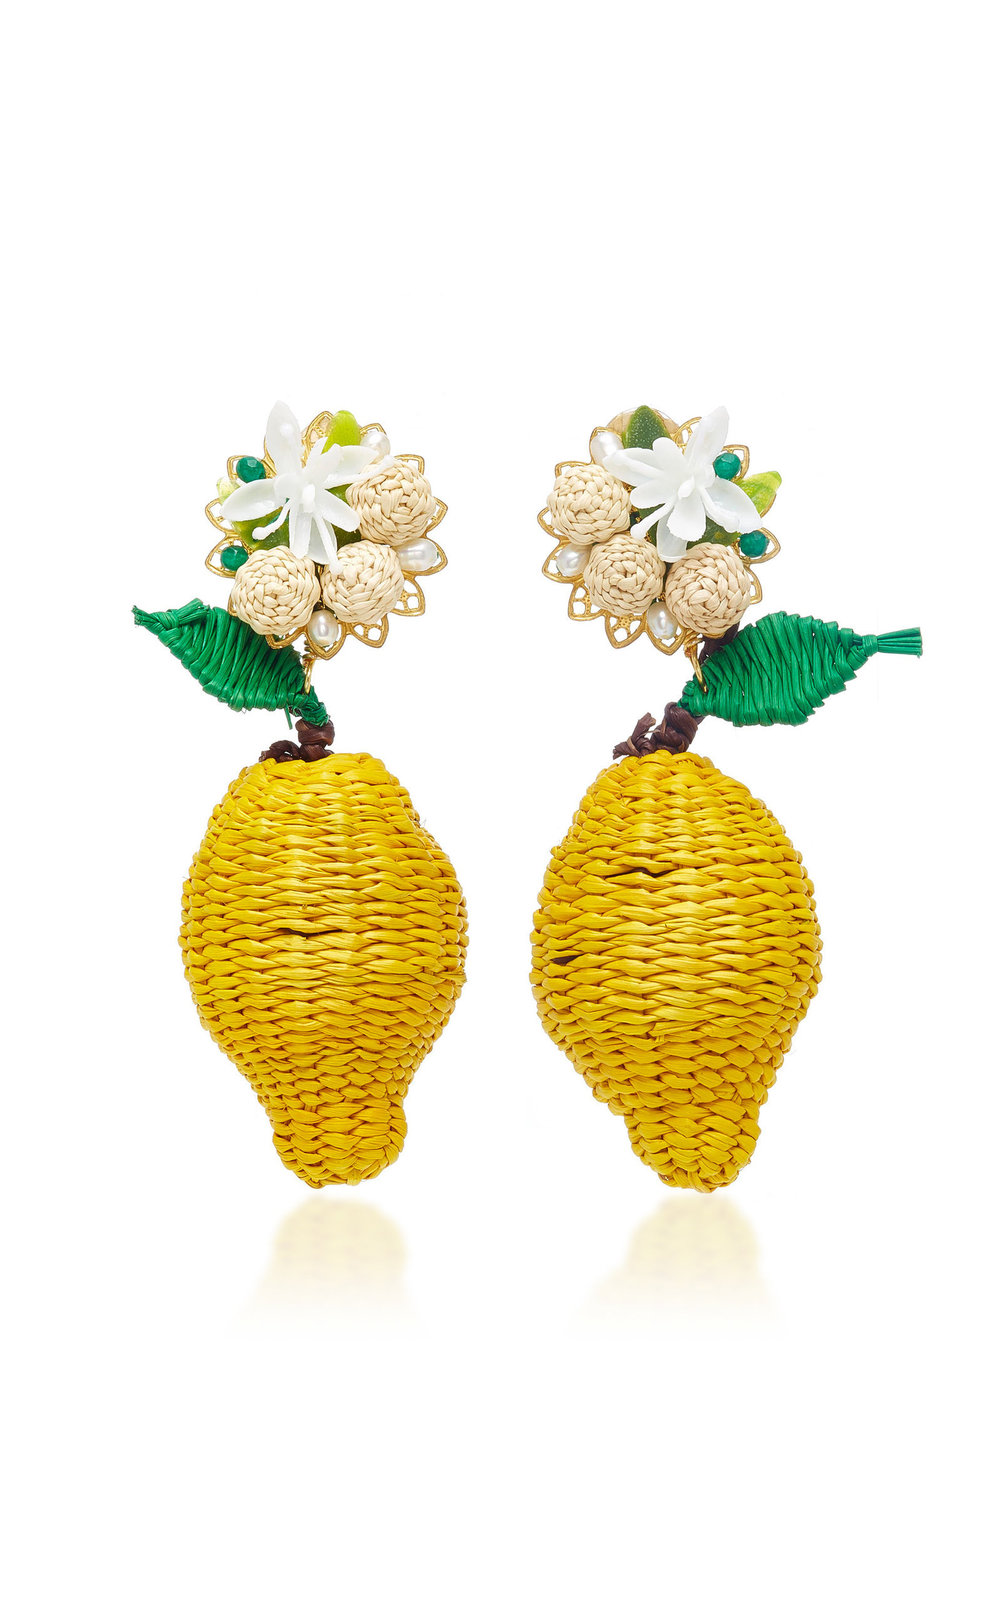 large_mercedes-salazar-yellow-limon-silvestre-earrings.jpg